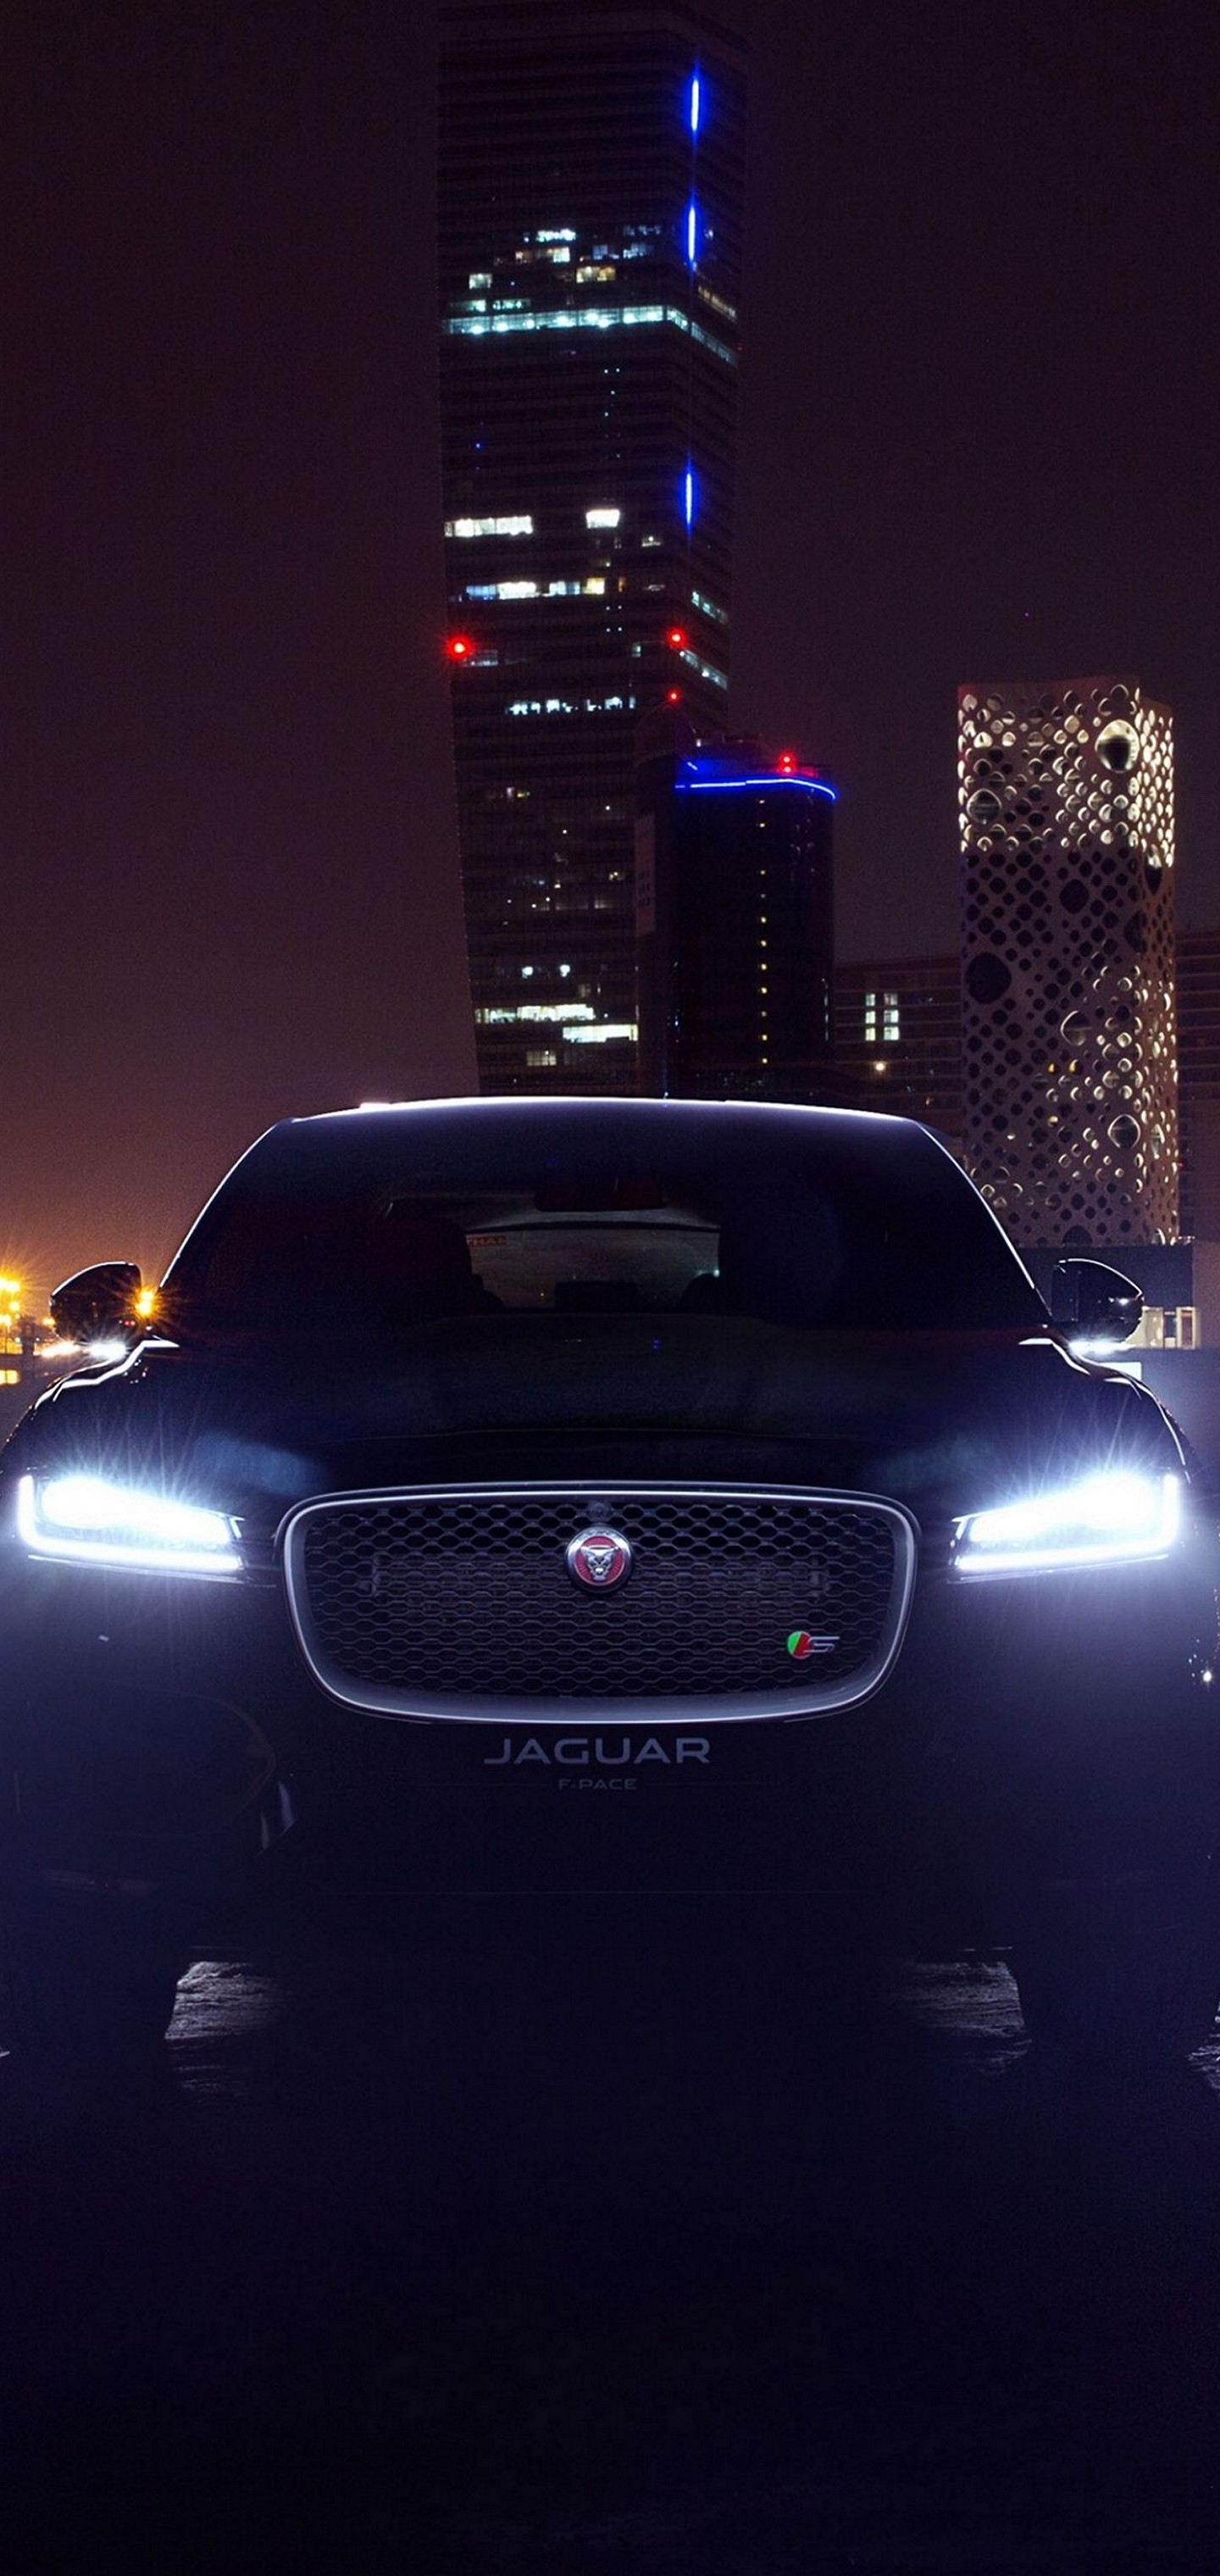 City Jaguar Dark Car Wallpaper 1440x3040